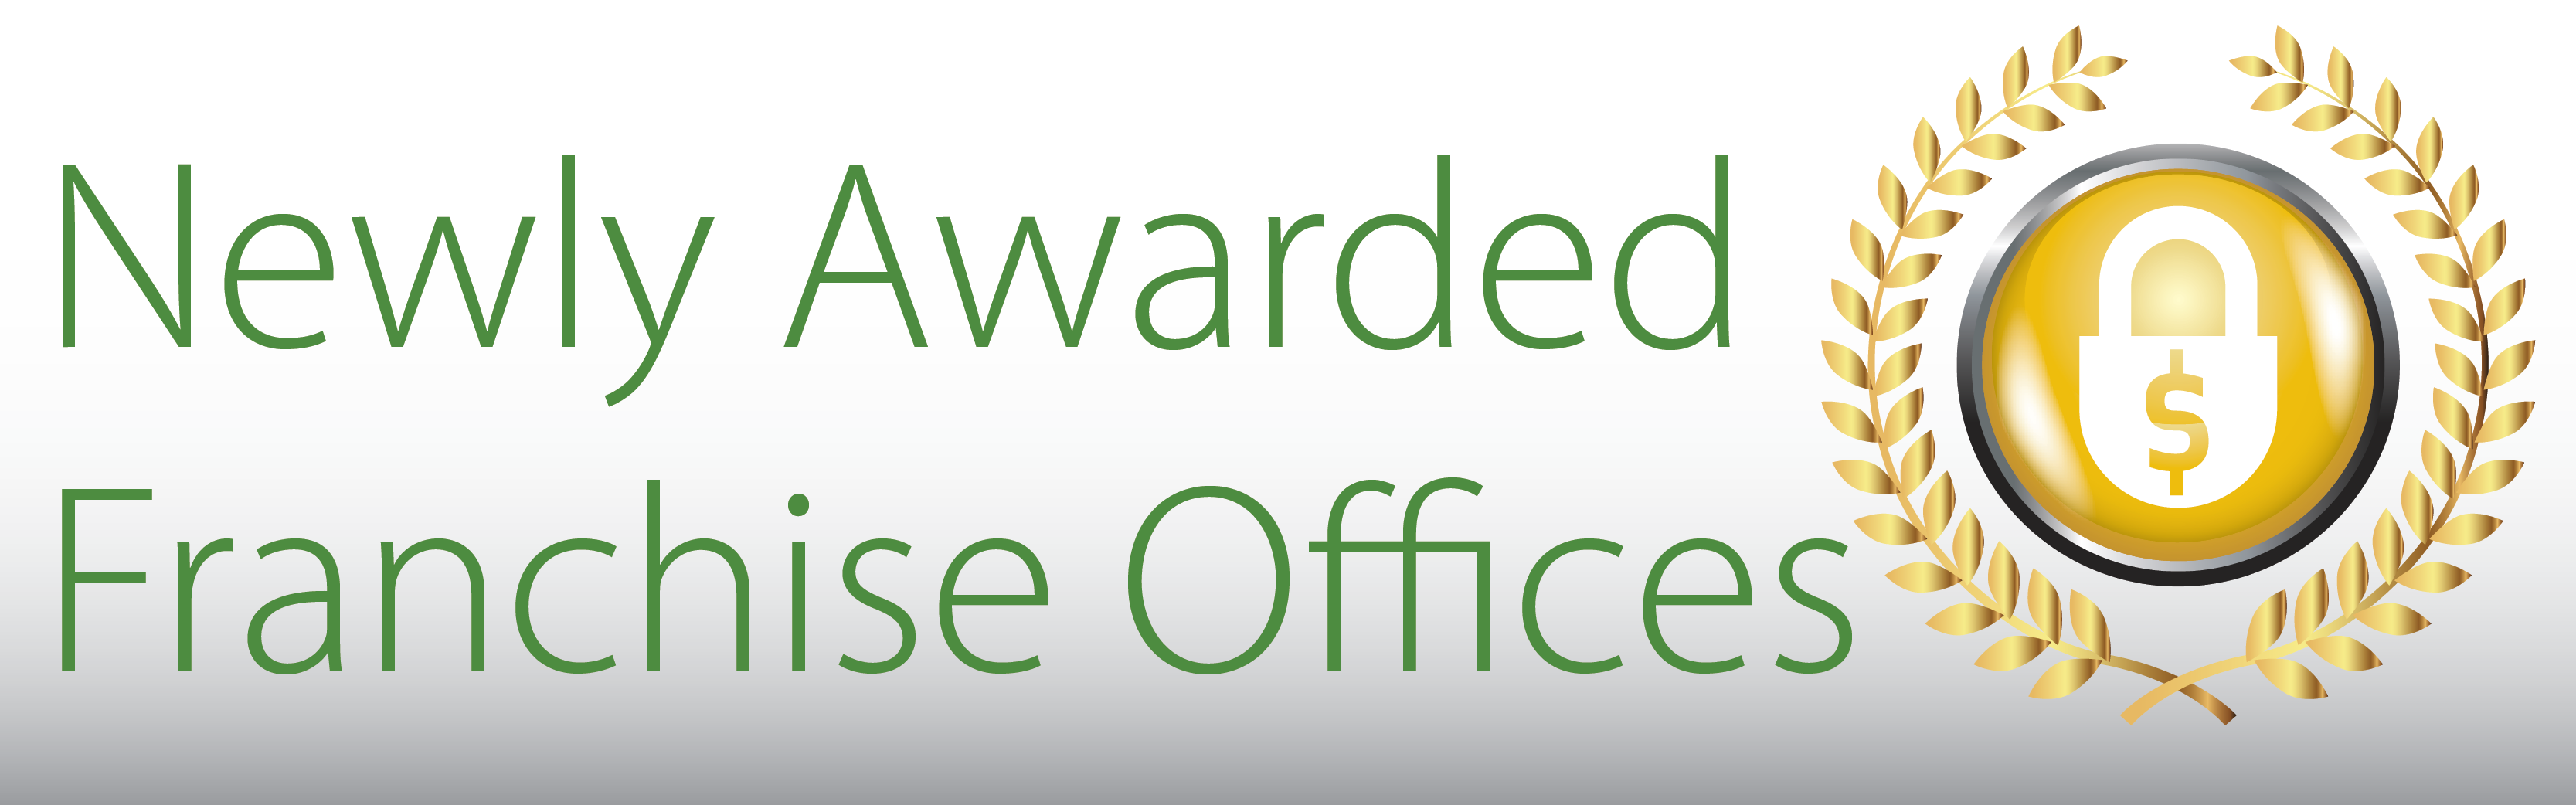 Payroll & Workforce Management Franchise Awards Second Franchise in Indiana